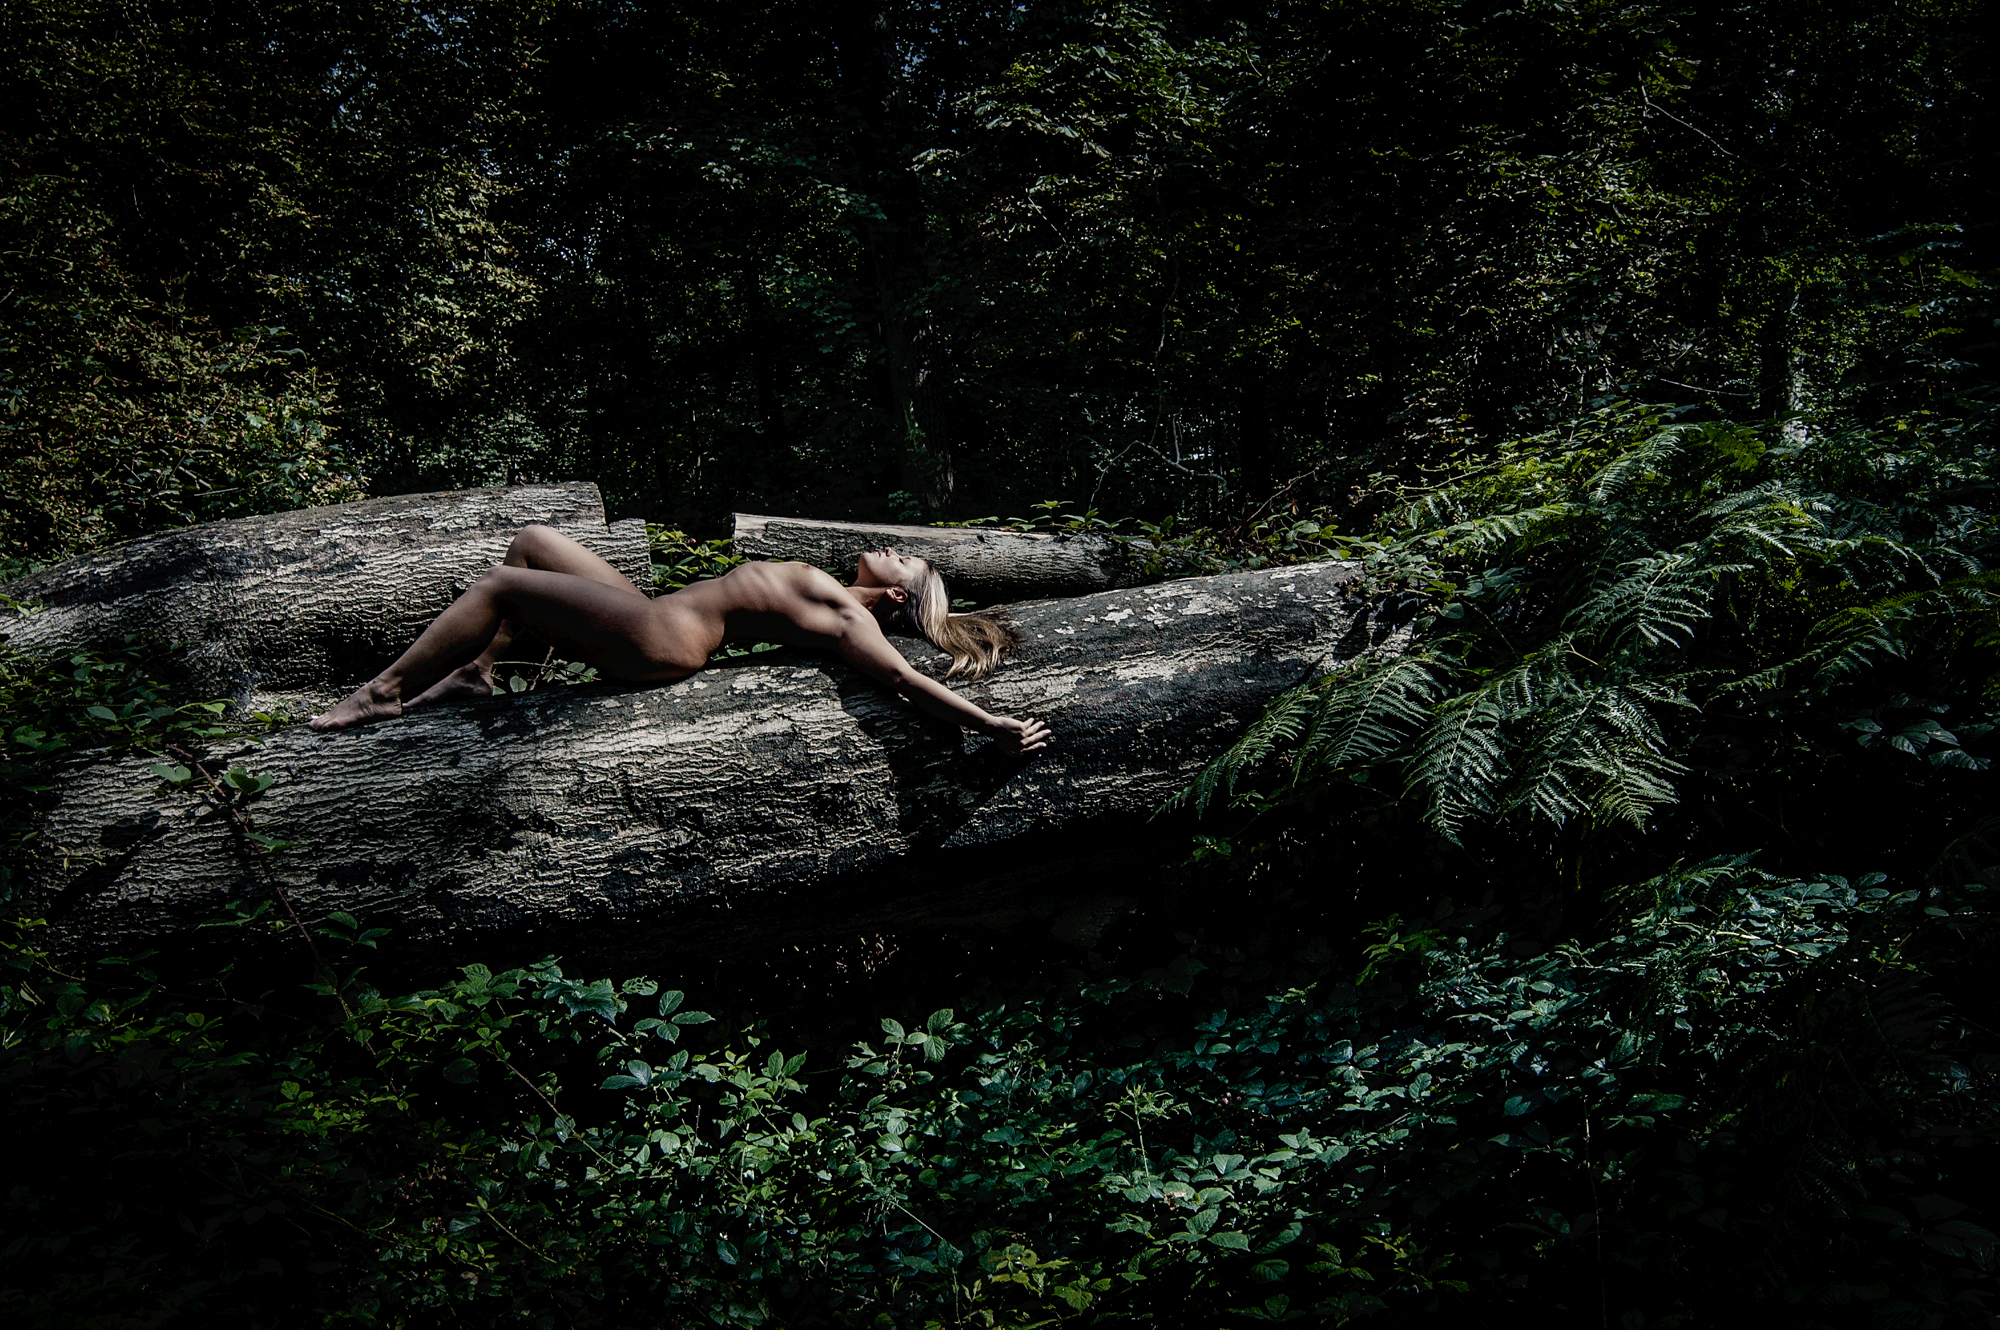 Photographing location nudes in woods